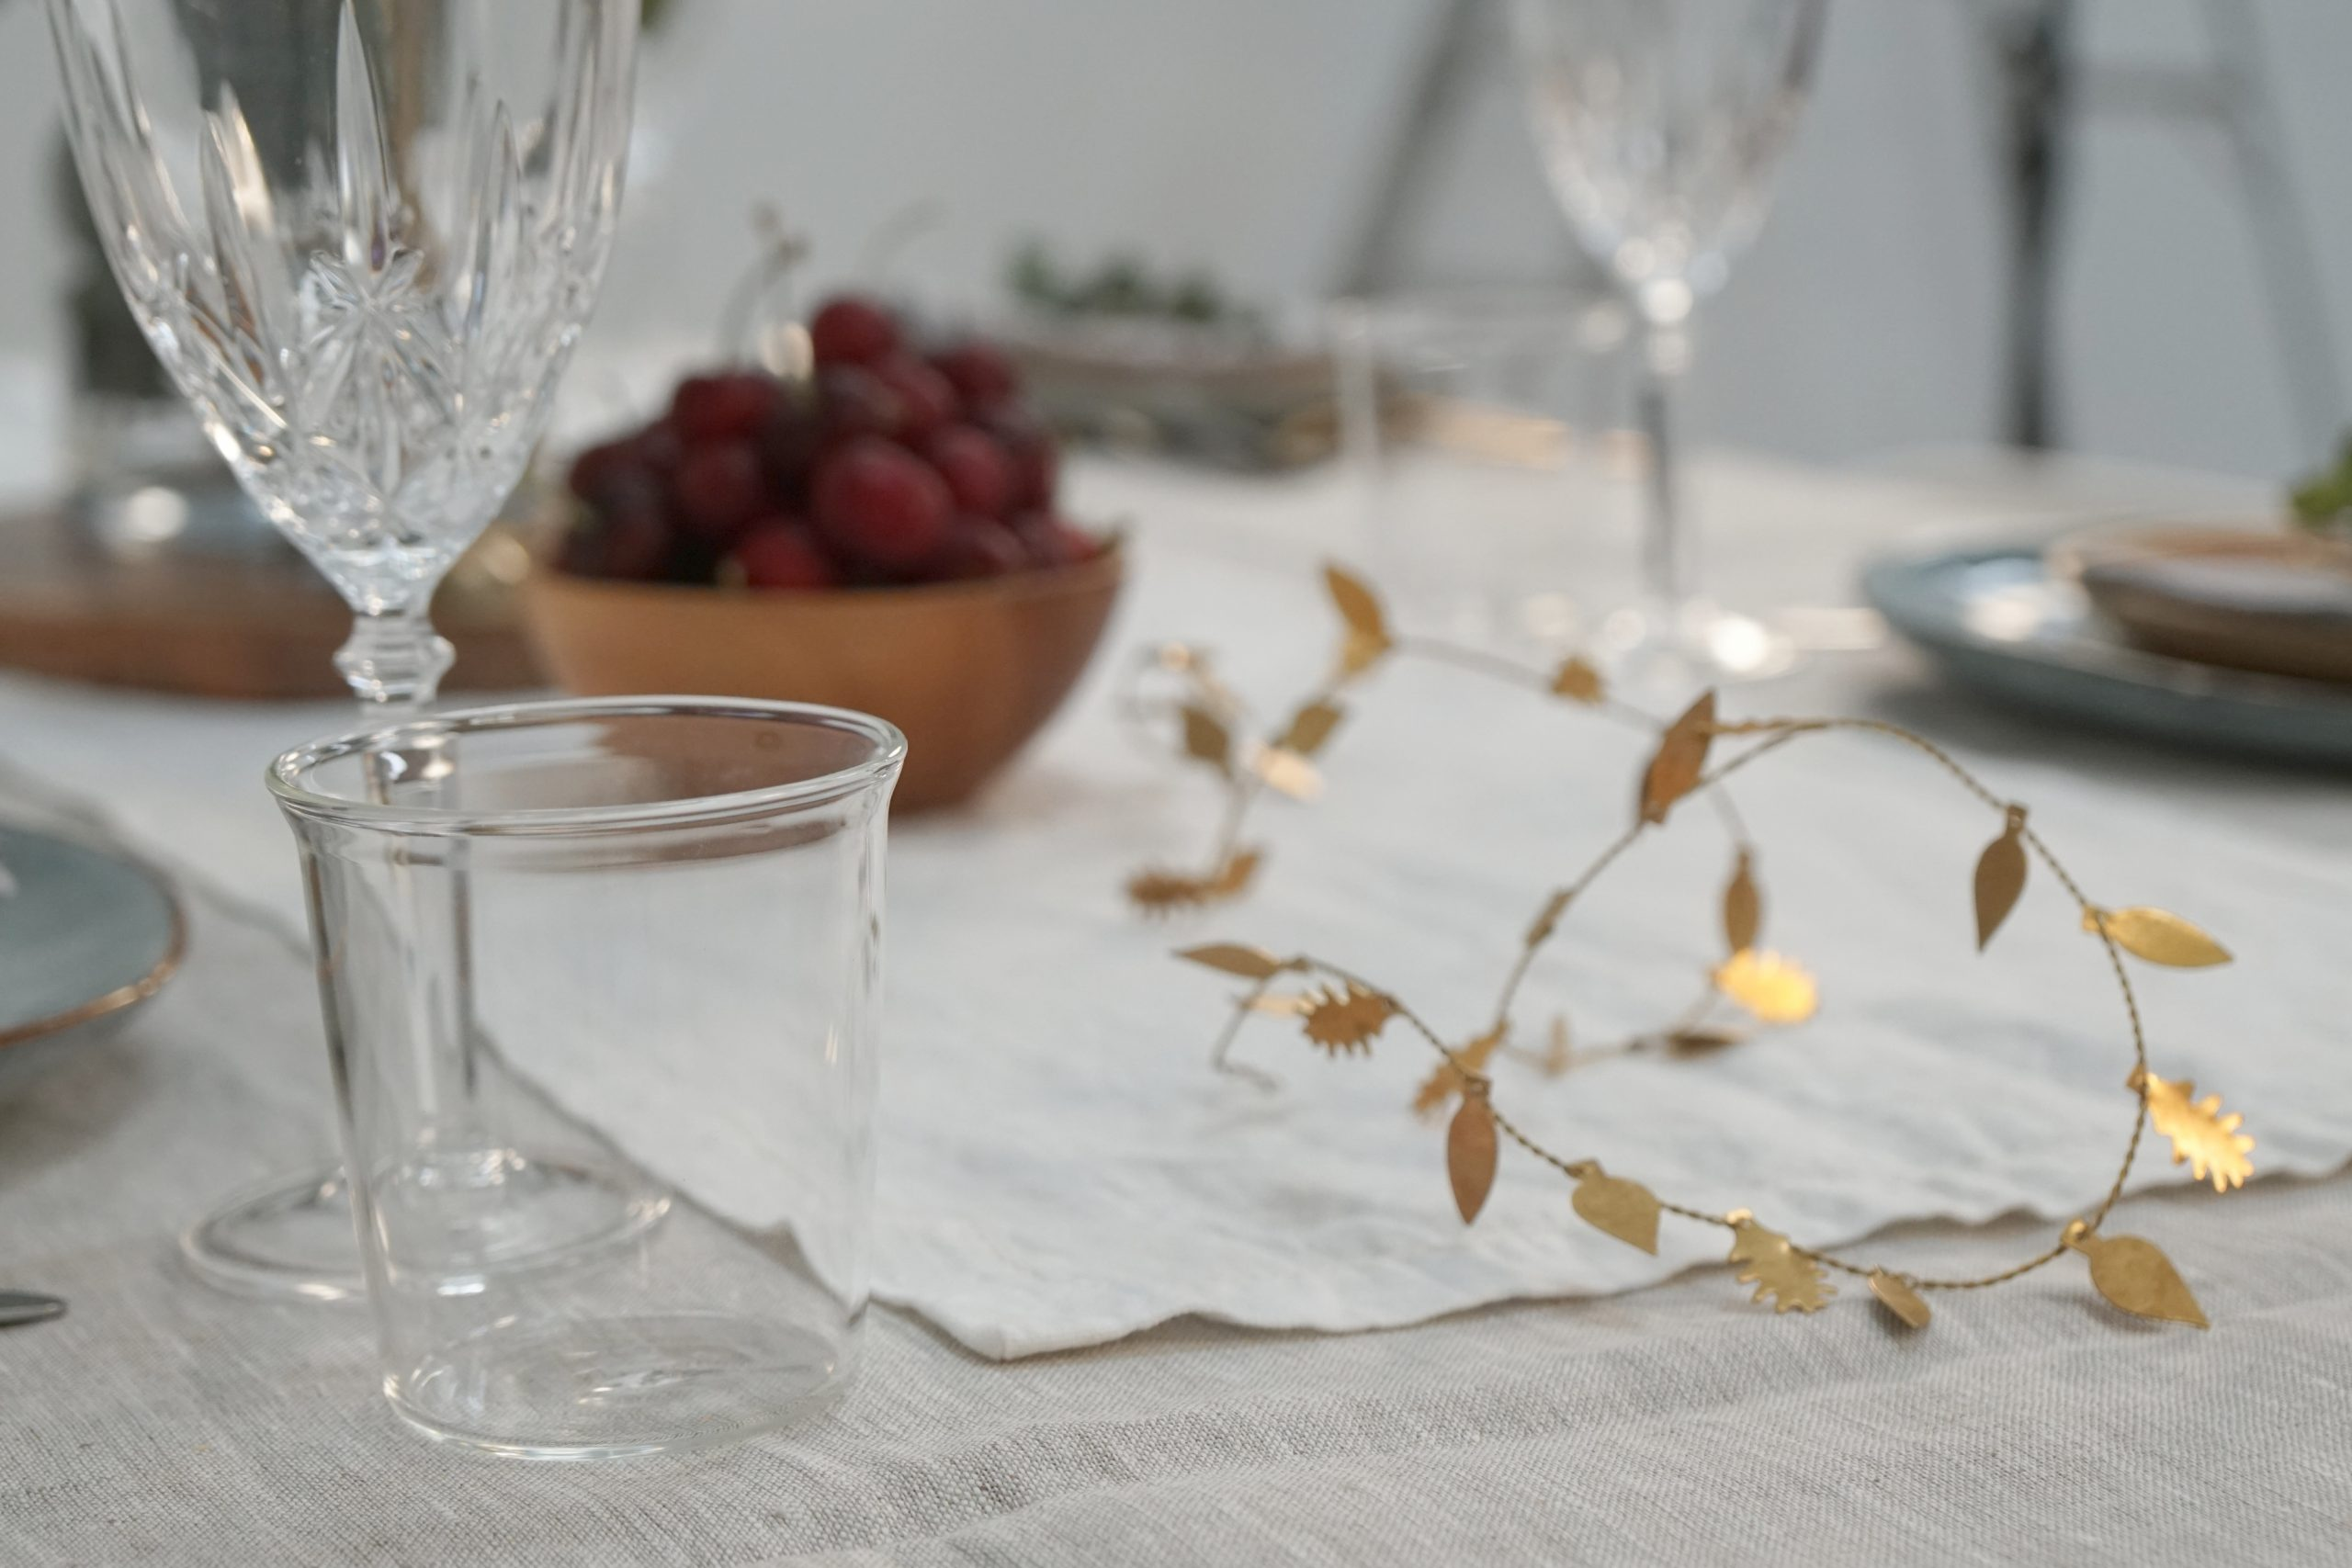 Brass wire Christmas garland on table